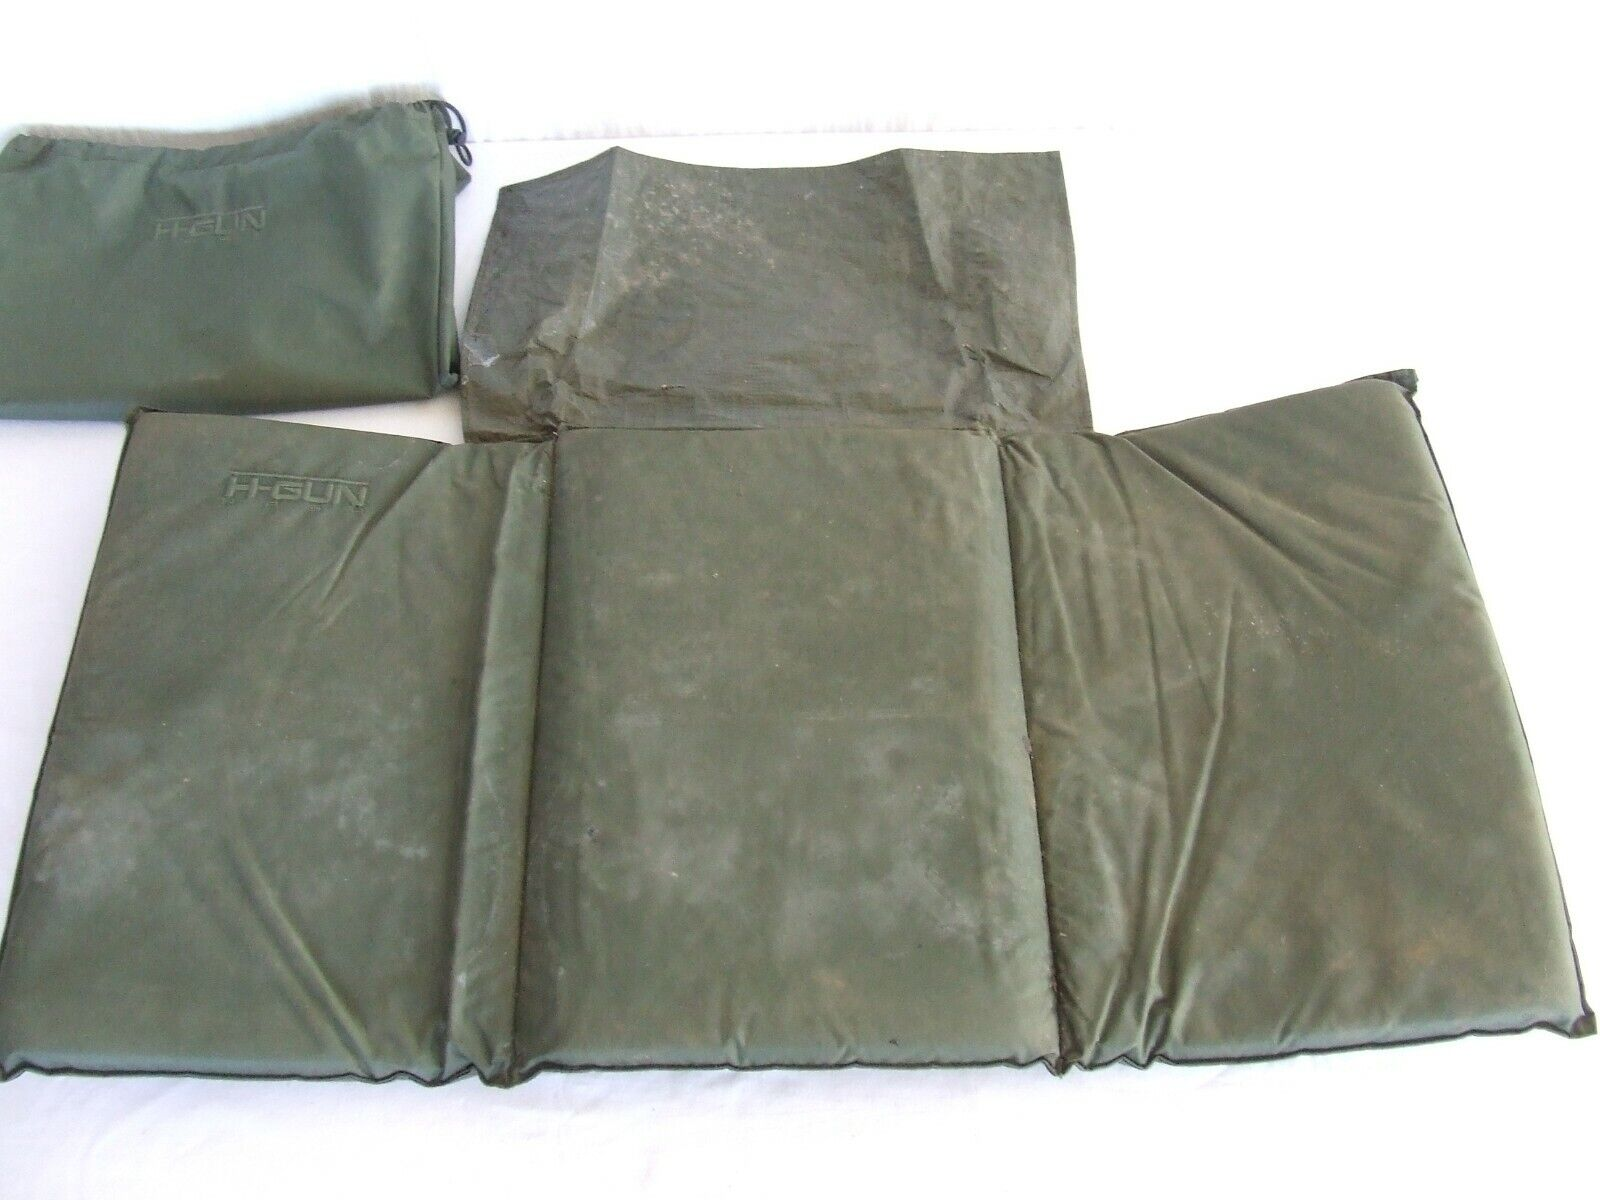 NASH H GUN UNHOOKING MAT carp pike barbel fishing gear set up